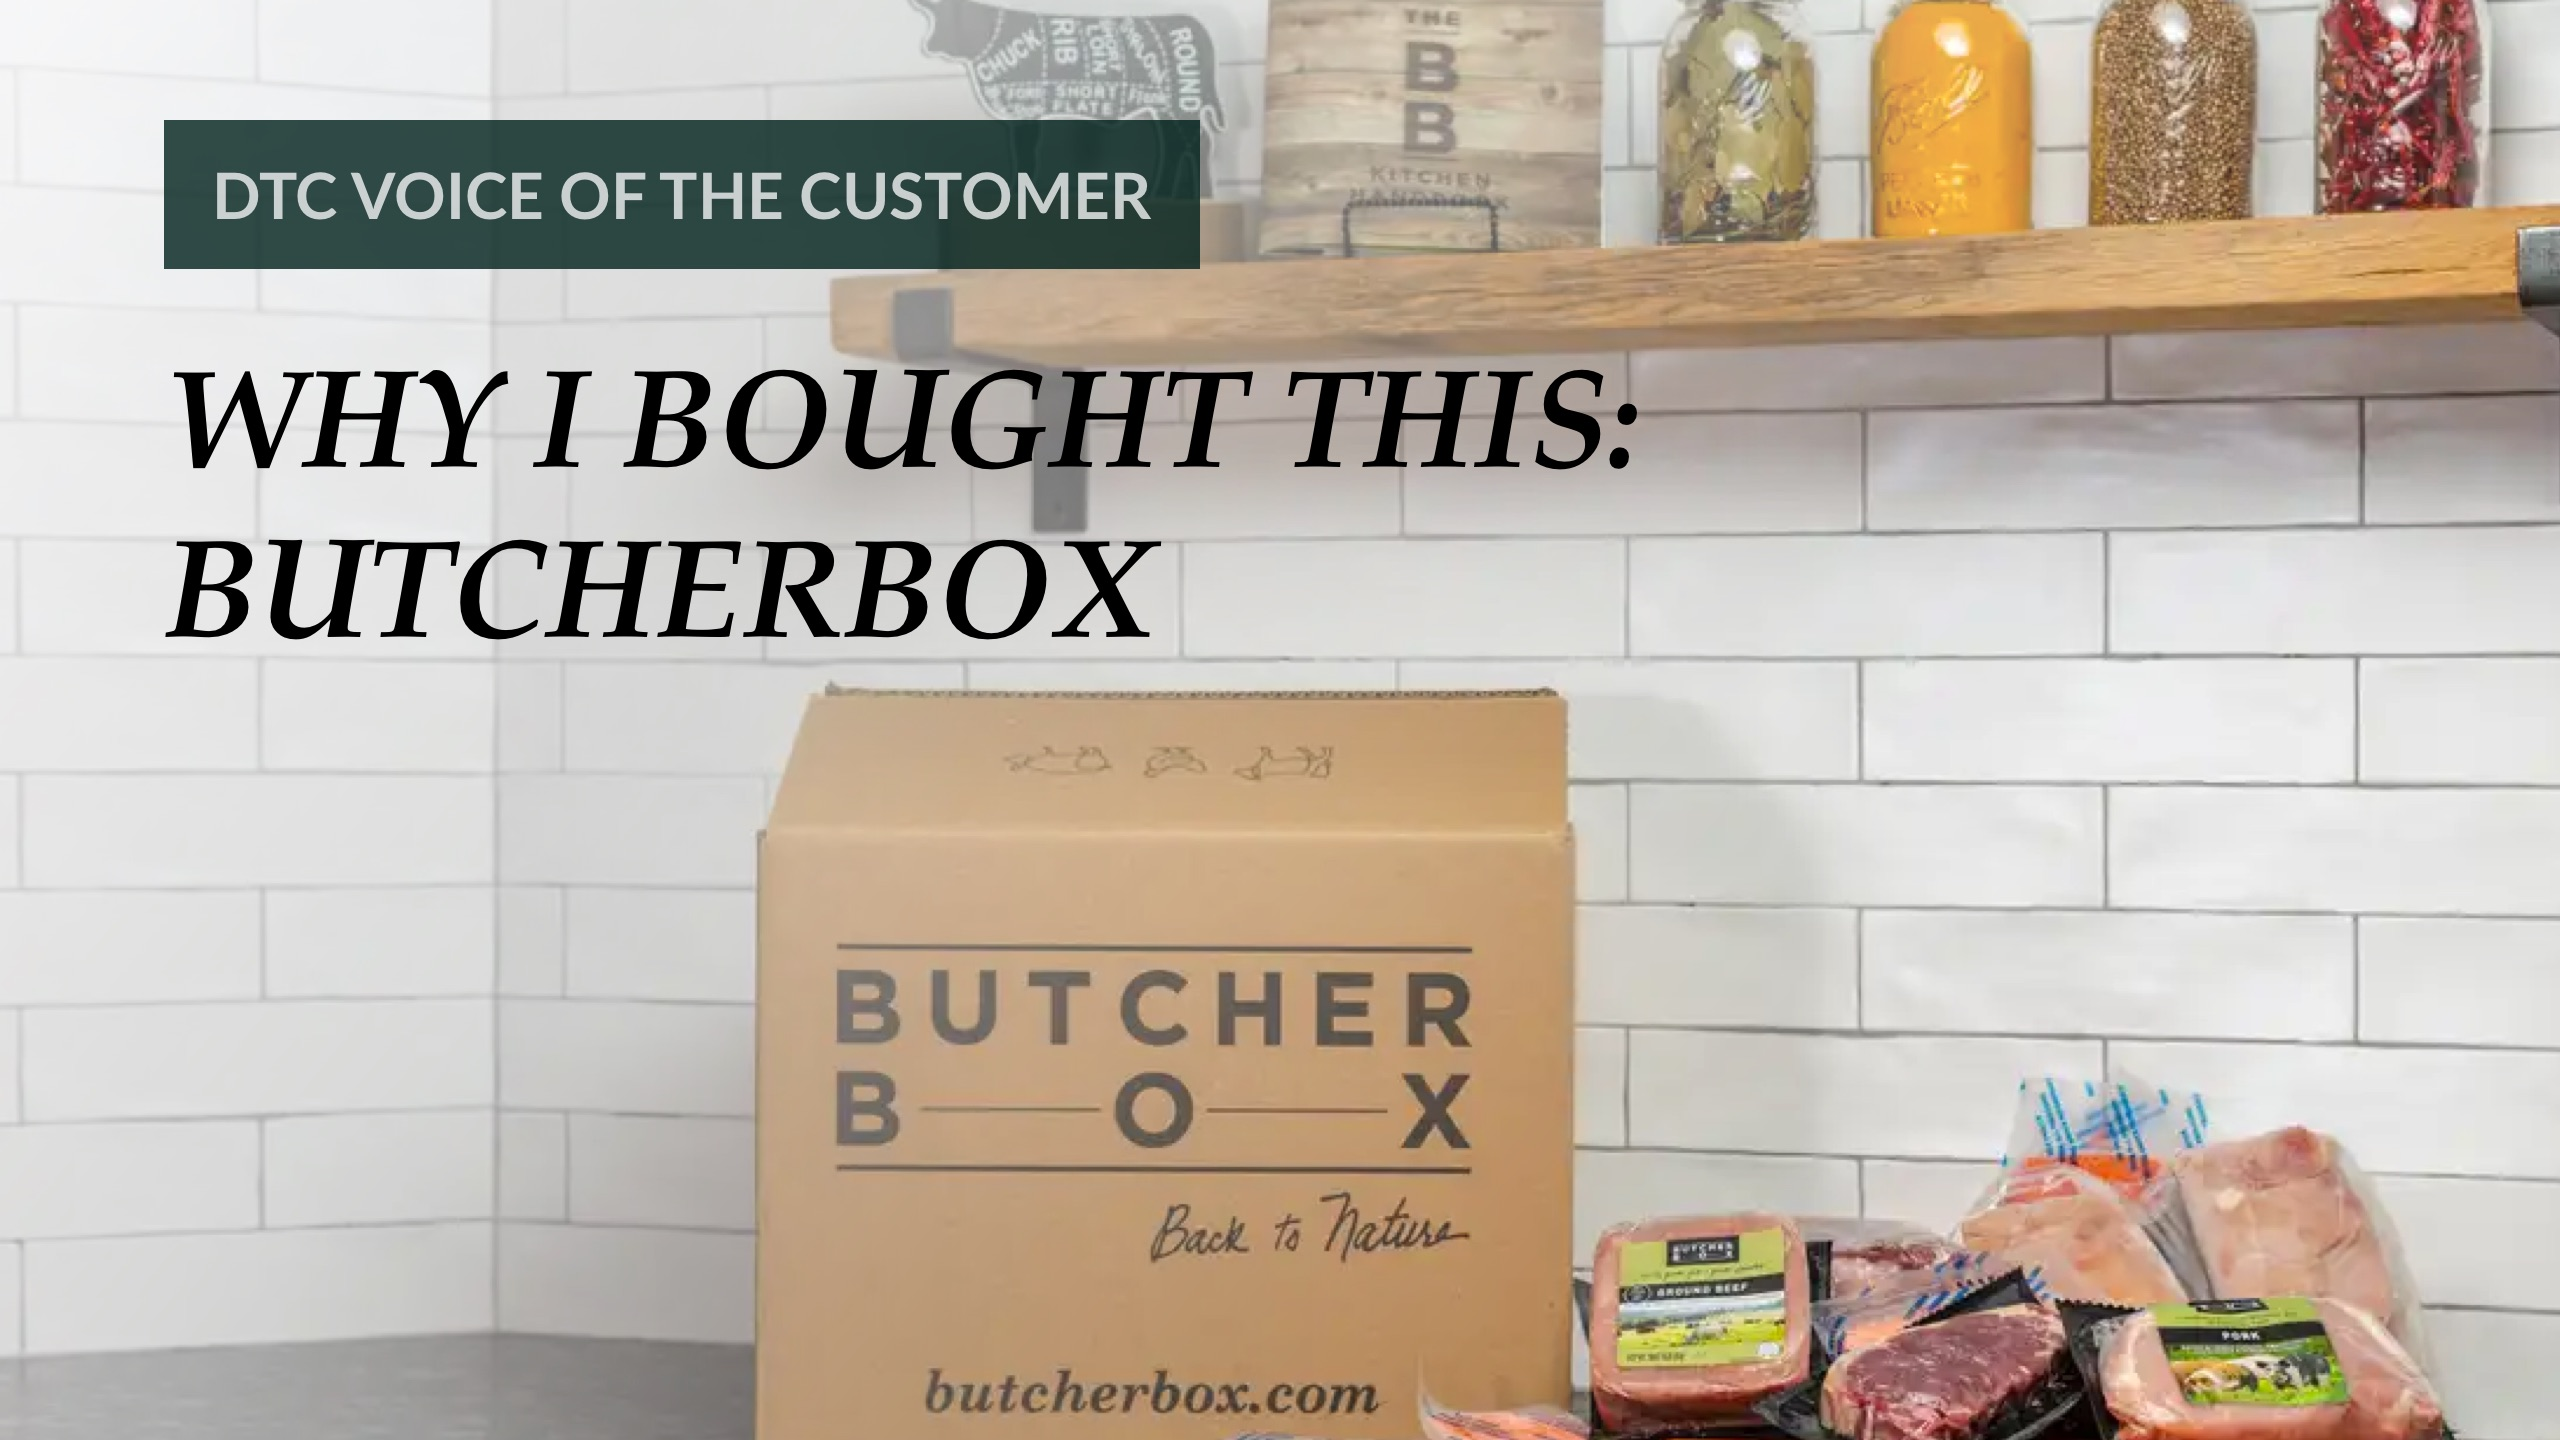 Why I Bought This: ButcherBox